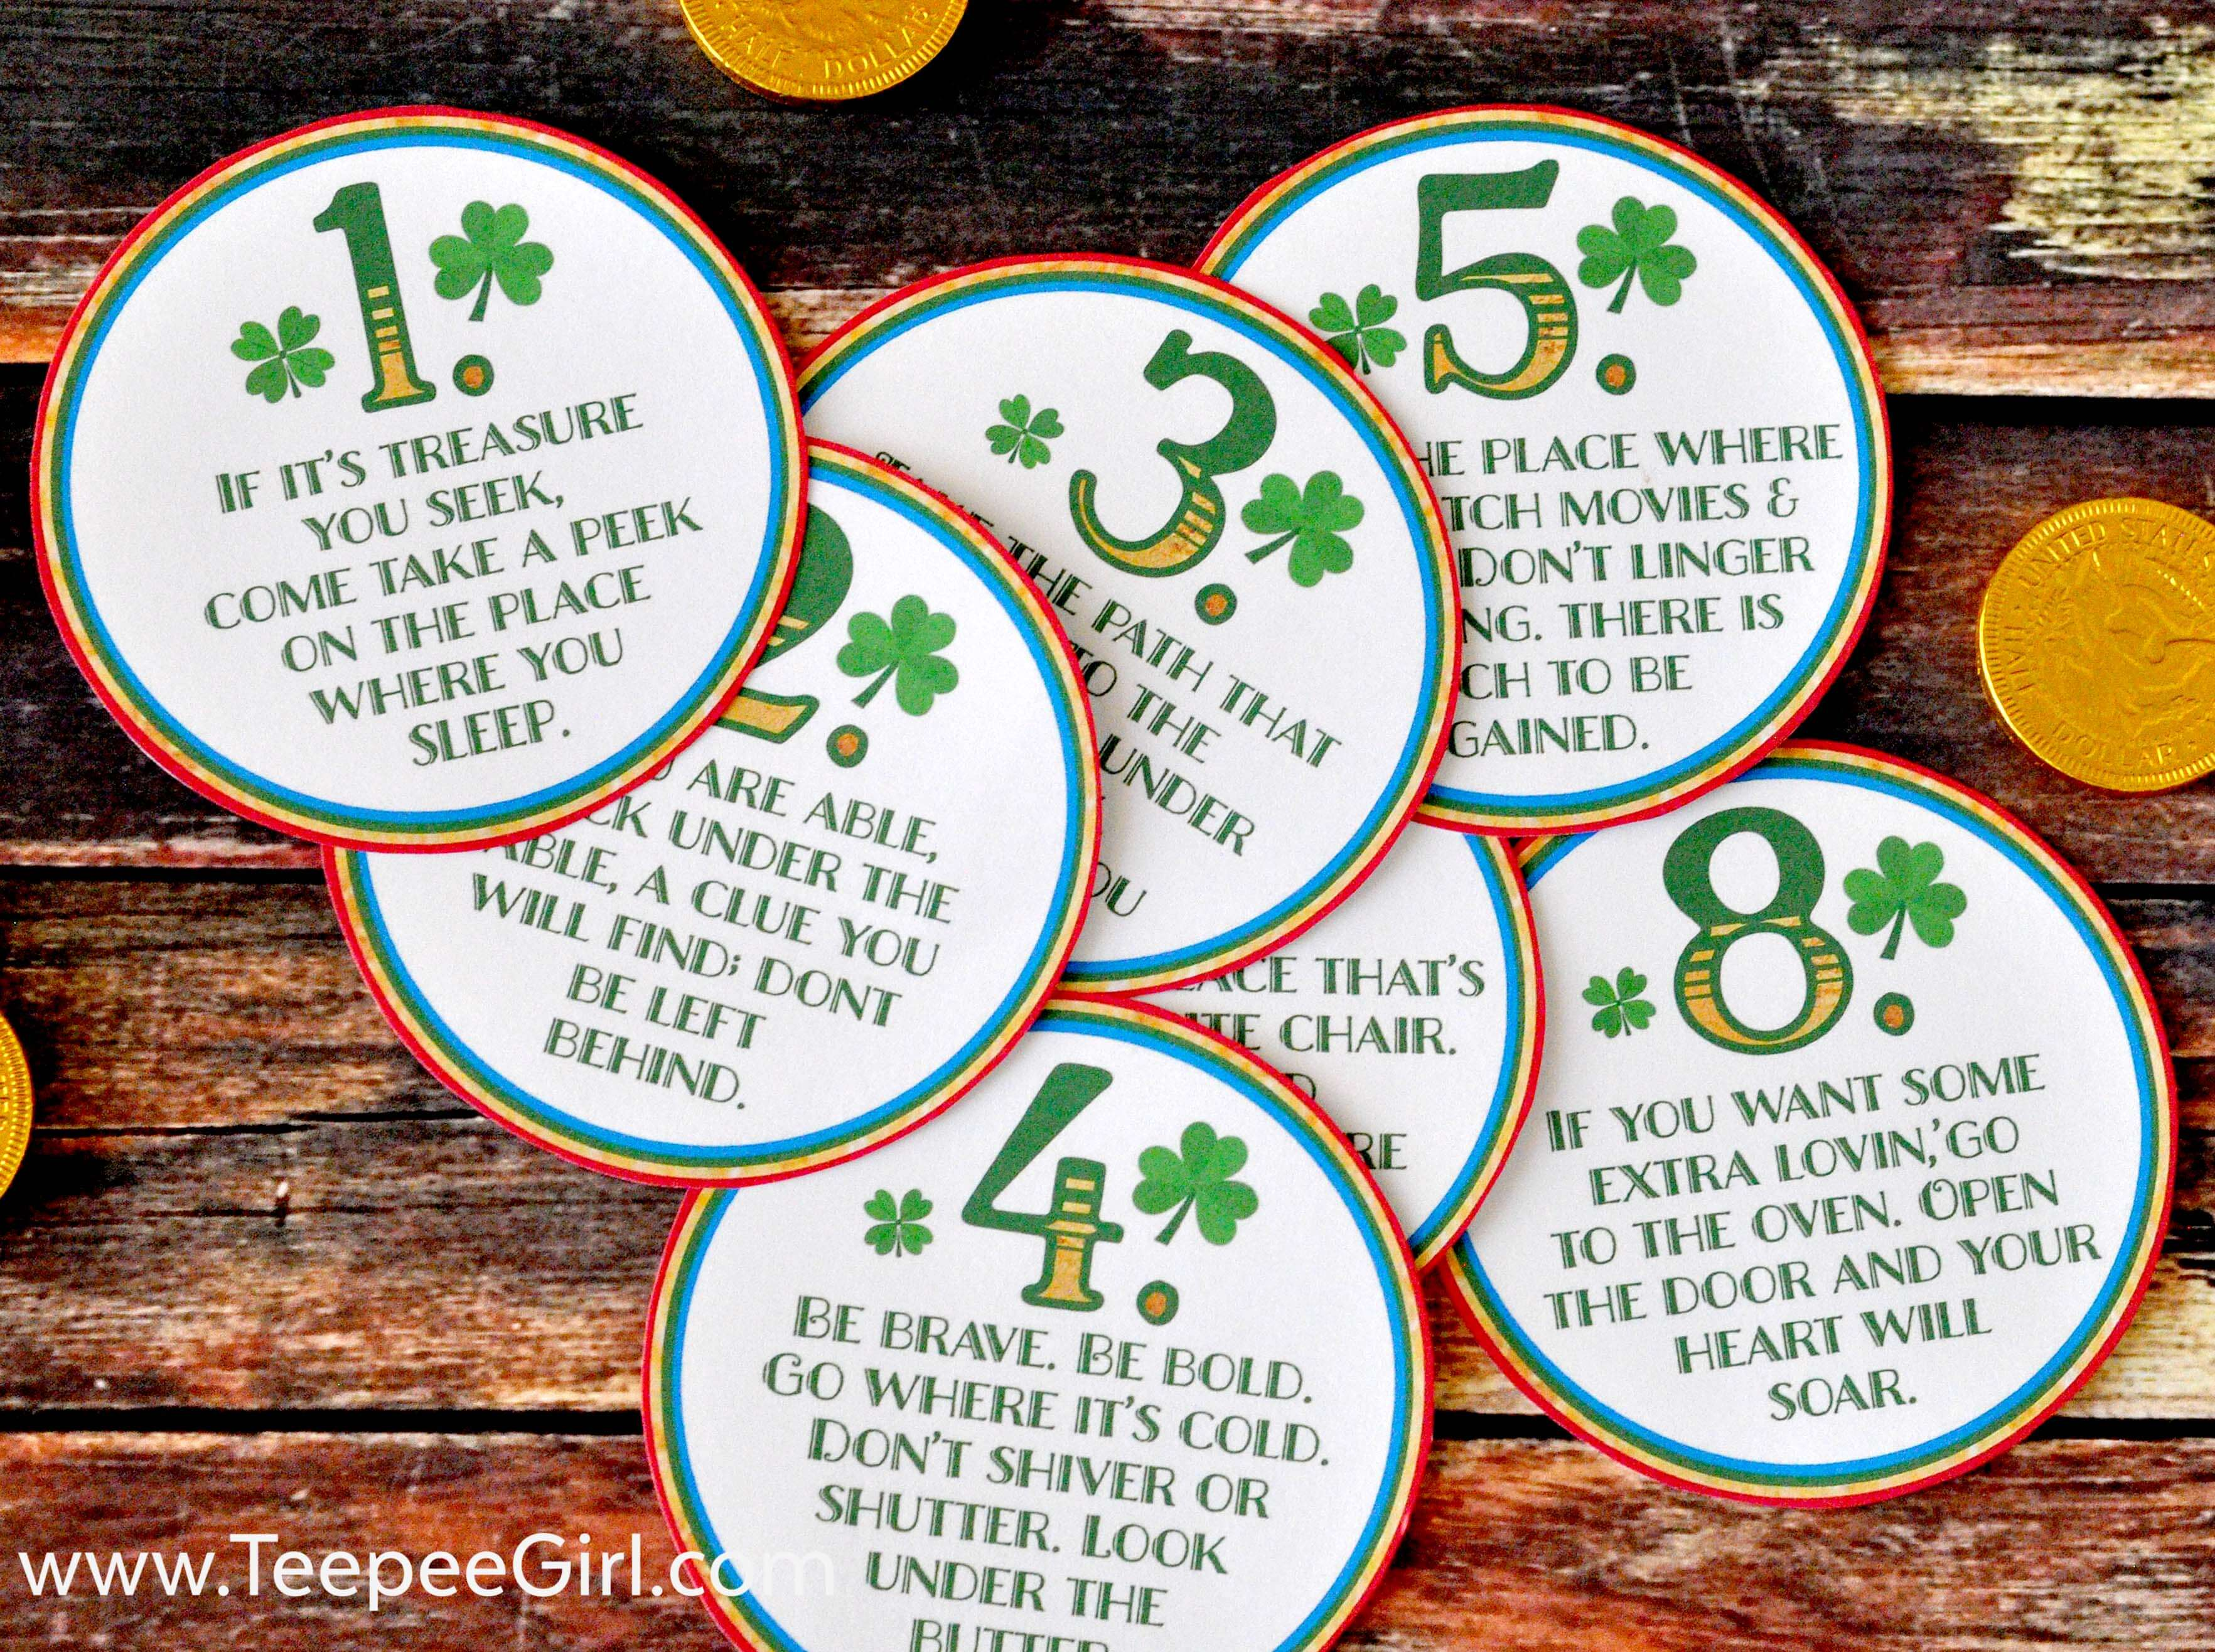 Your kids will love this FREE St. Patrick's Day Scavenger Hunt! Just print and cut out the printables, and watch your kids race to find their treasure! This activity comes with 8 clues and a treat topper. Get it today at www.TeepeeGirl.com!